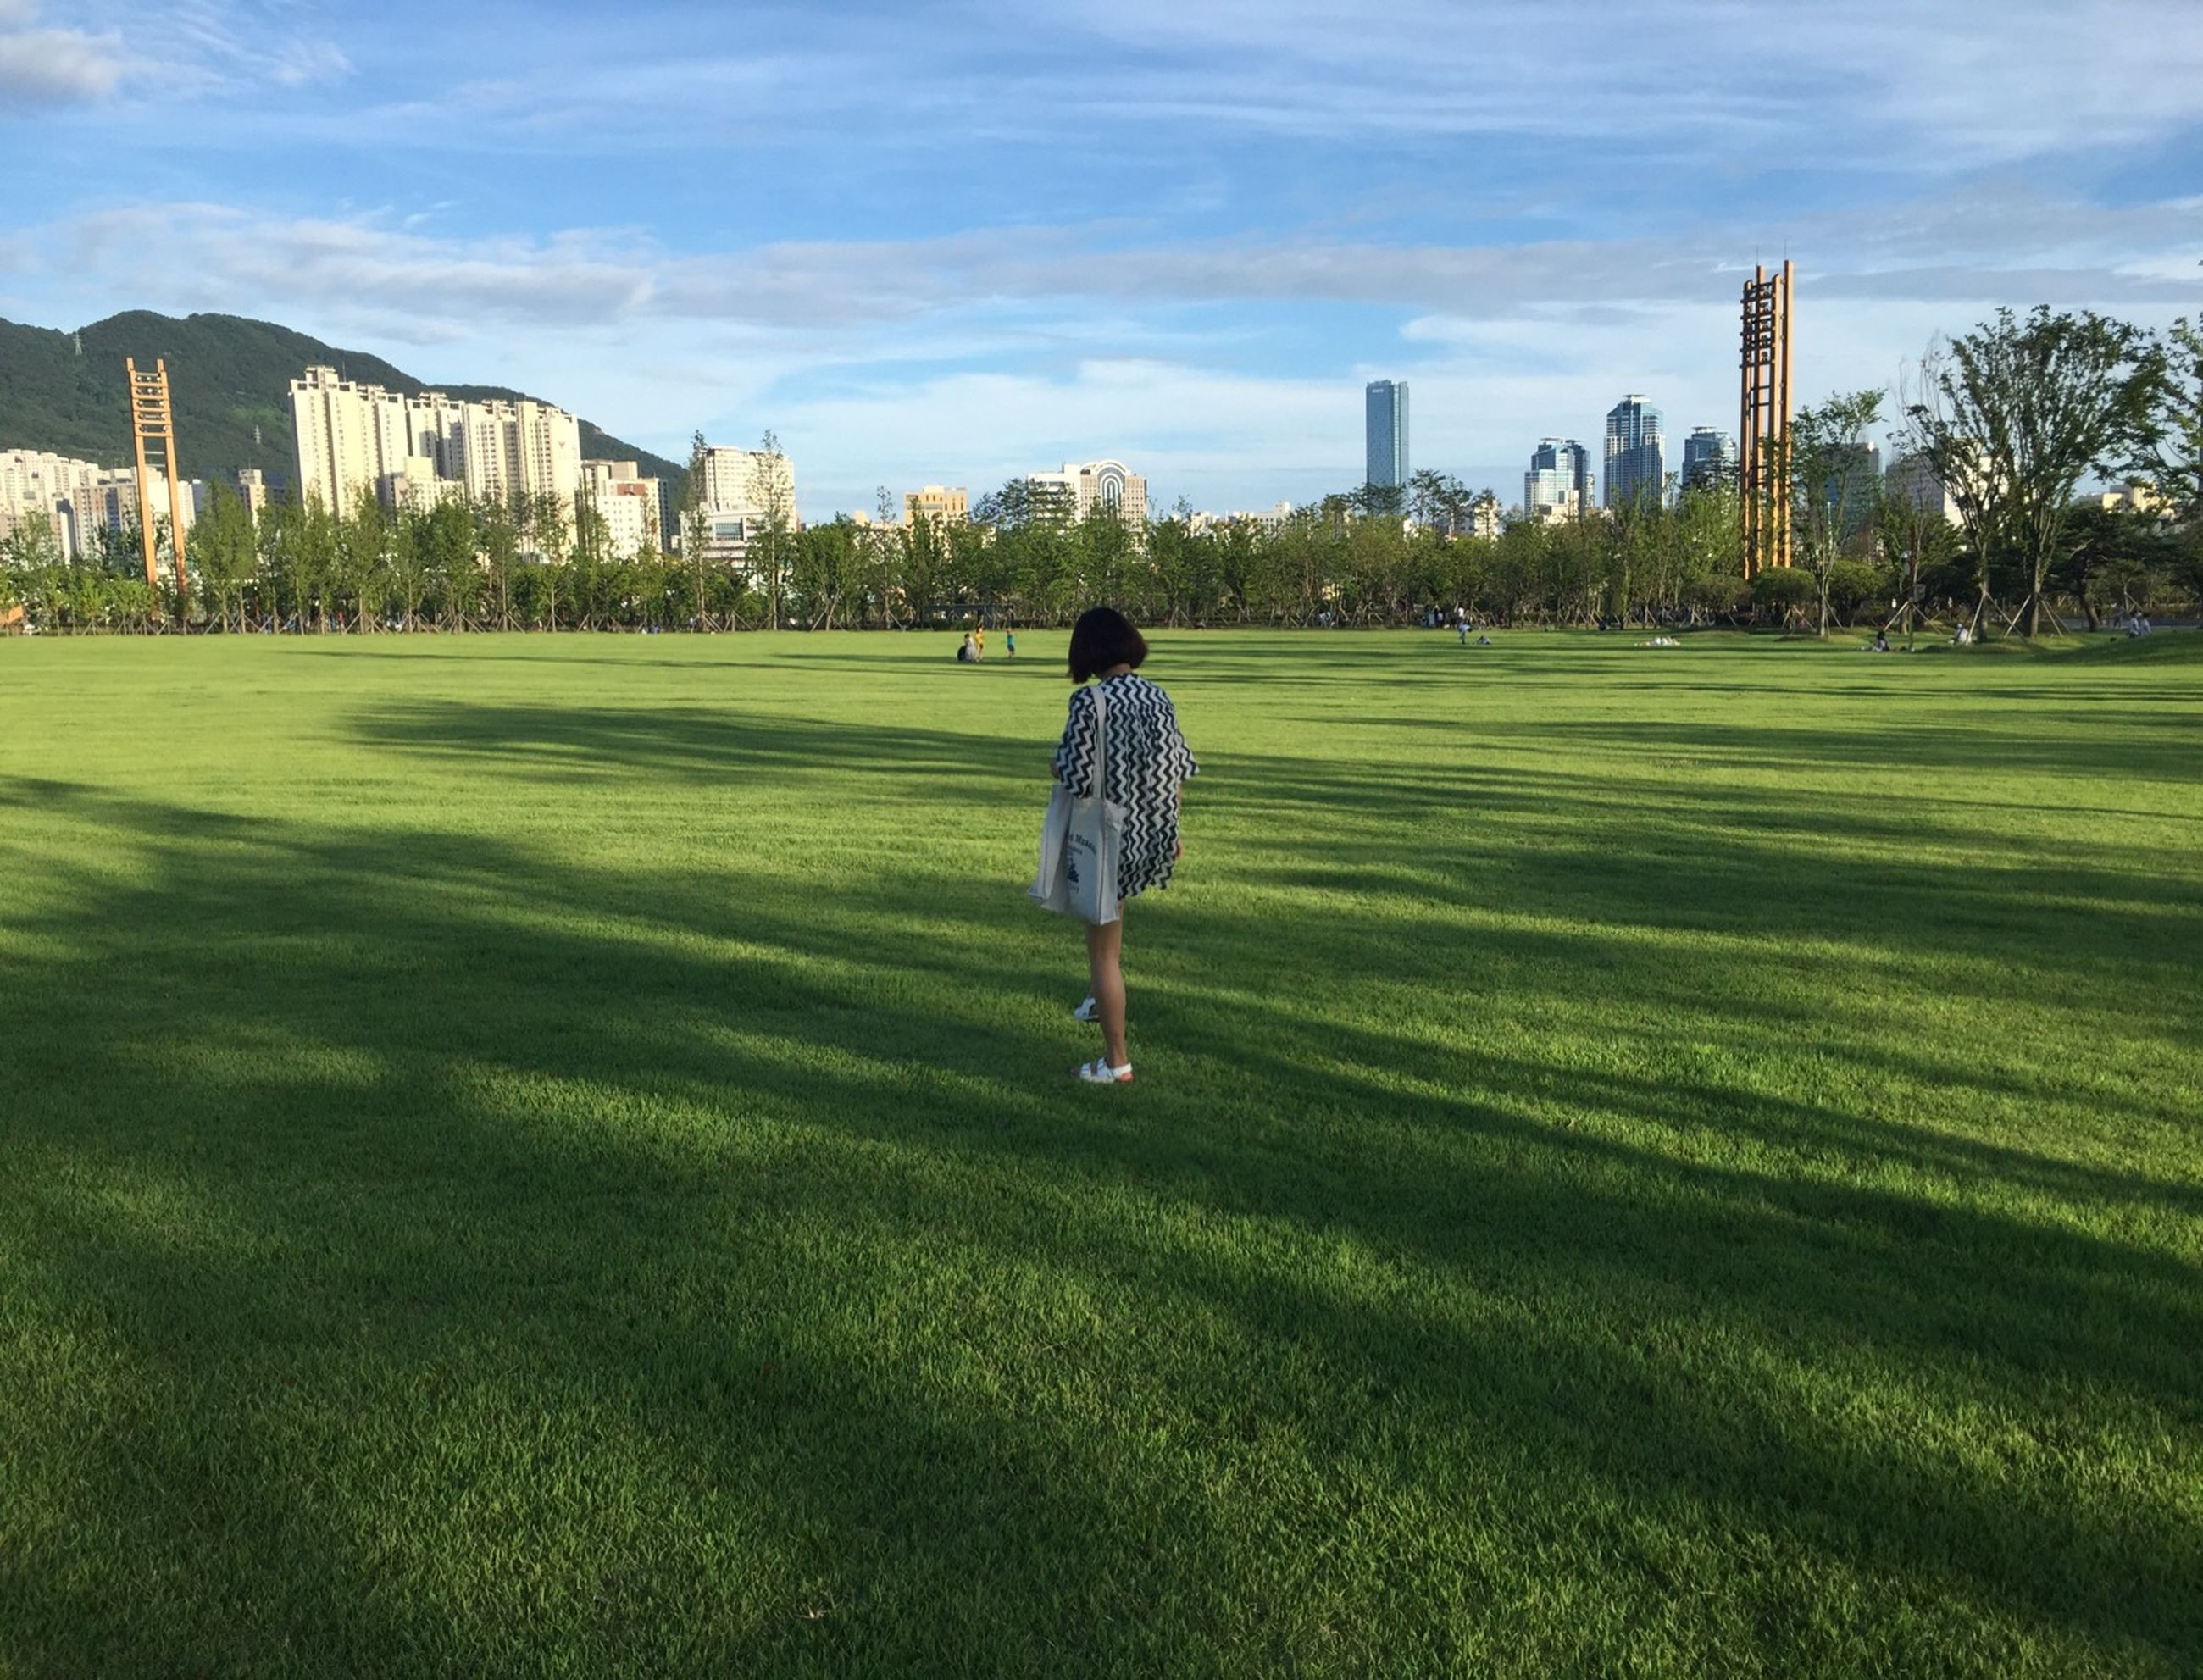 grass, full length, field, lifestyles, casual clothing, leisure activity, green color, grassy, rear view, sky, standing, park - man made space, architecture, building exterior, childhood, built structure, walking, lawn